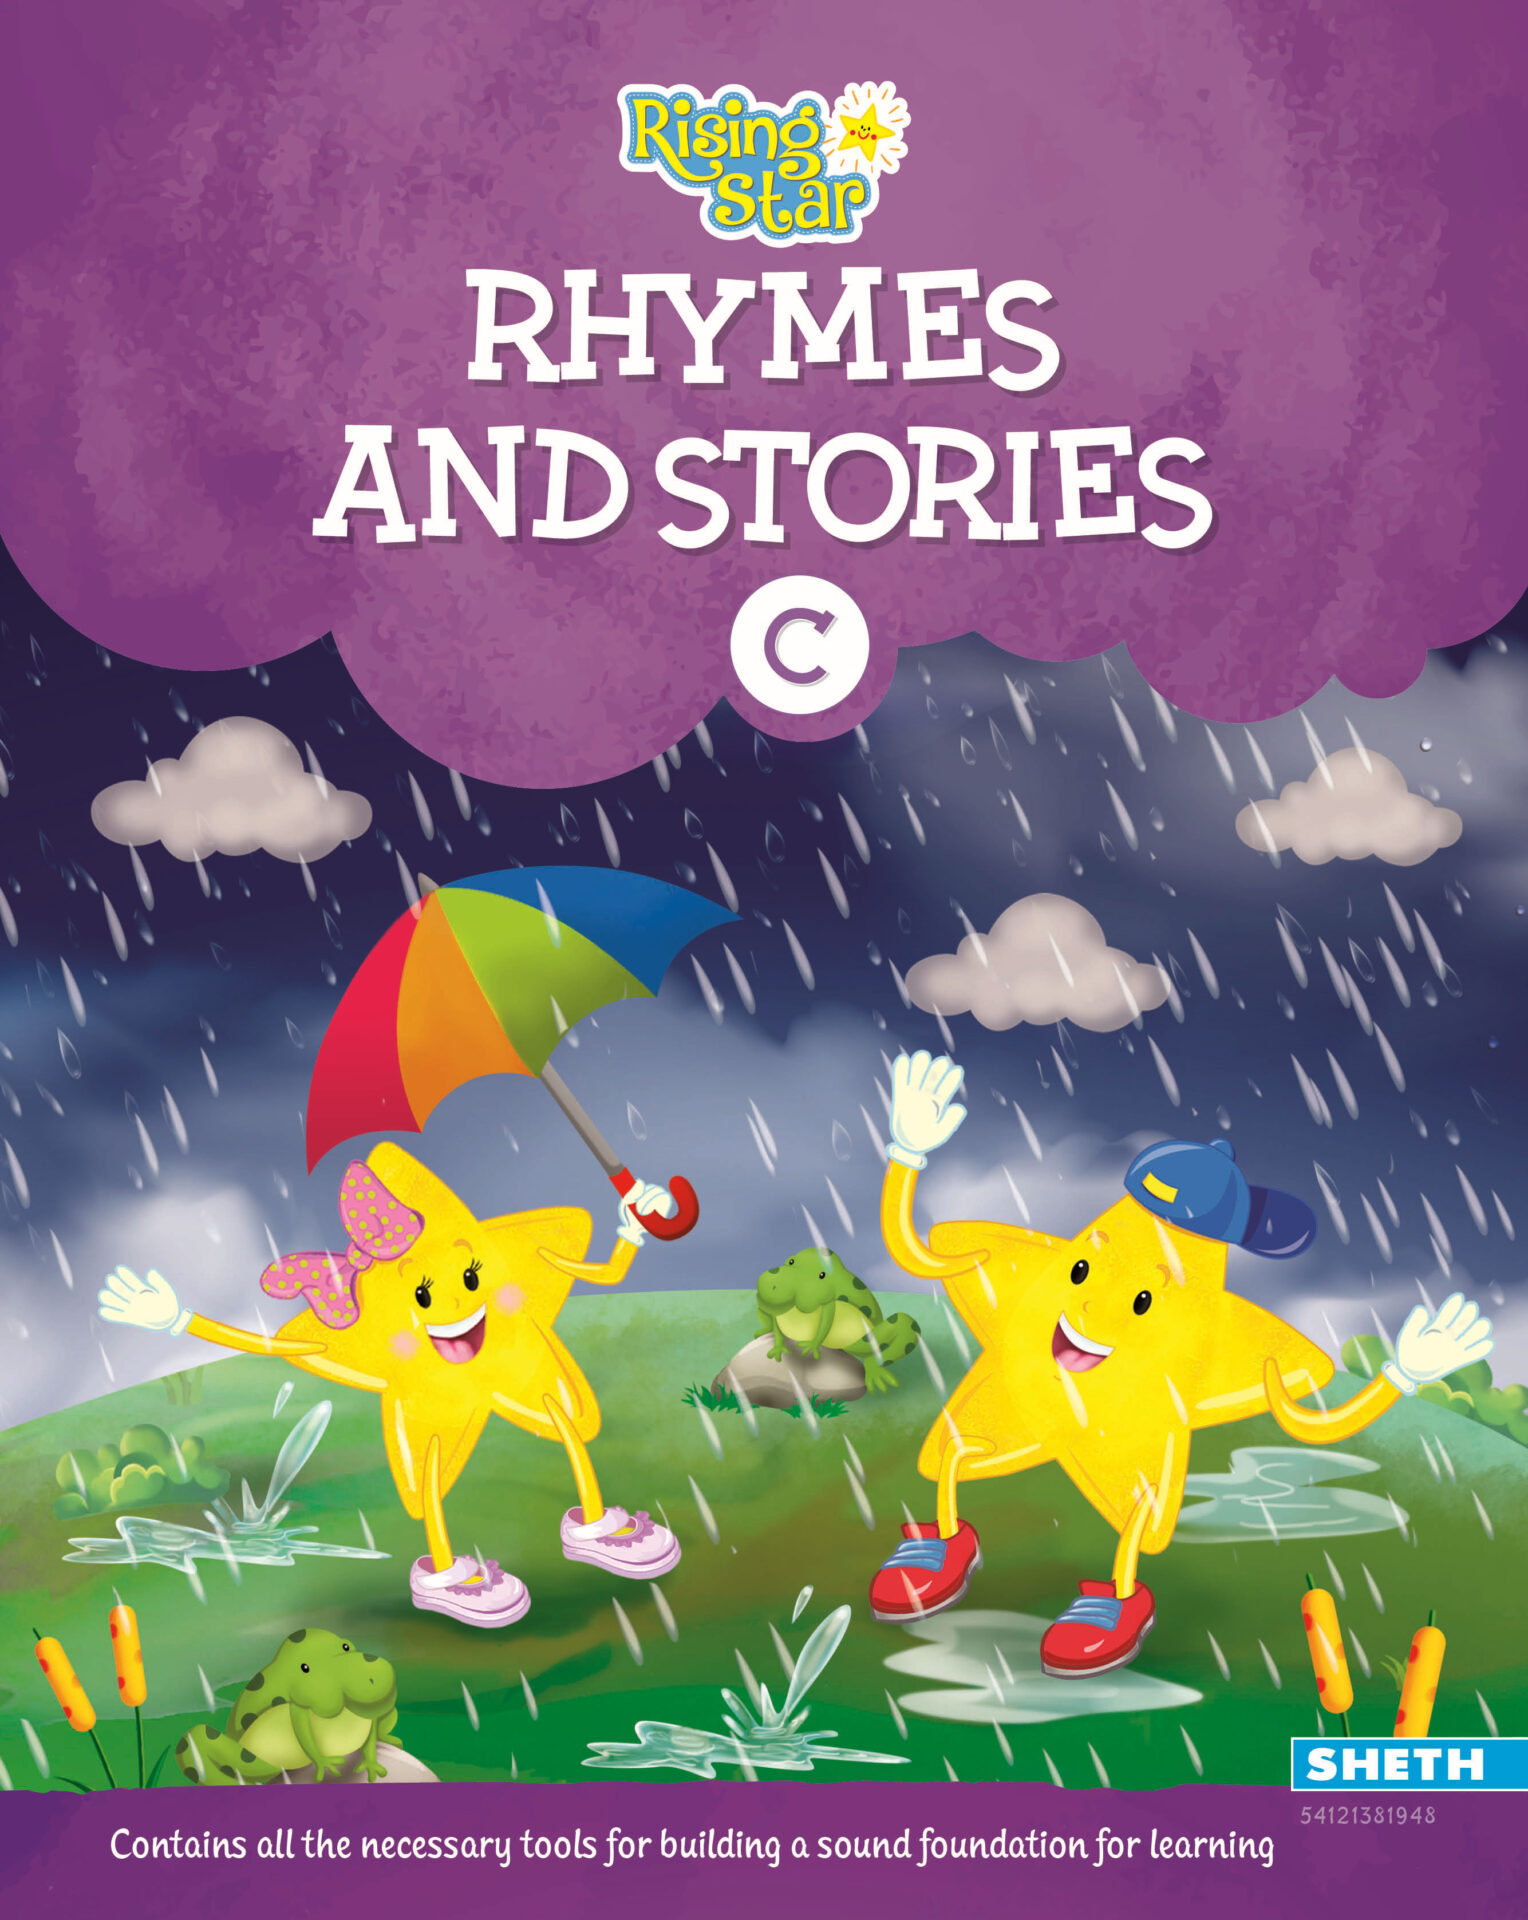 Rising Star Rhymes and Stories C 1 2